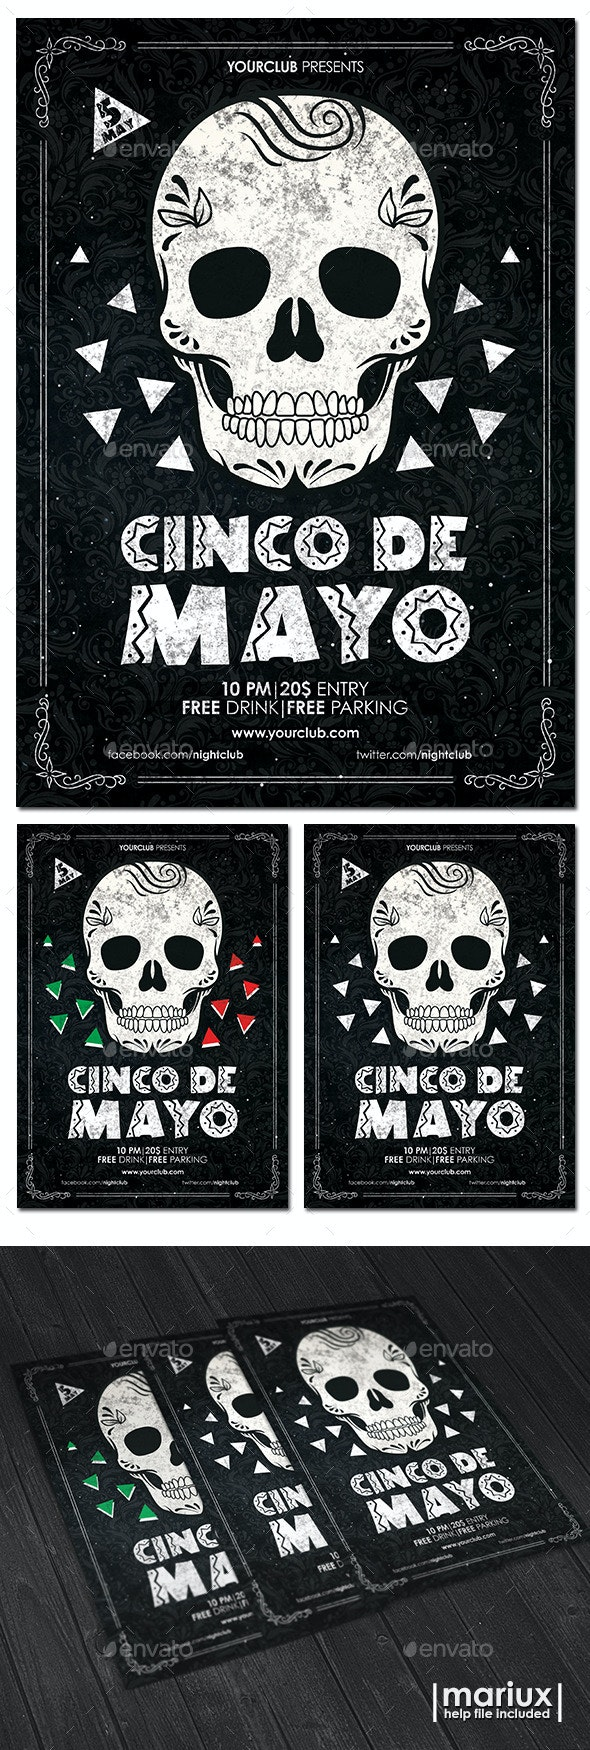 Cinco de Mayo Flyer Poster - Clubs & Parties Events